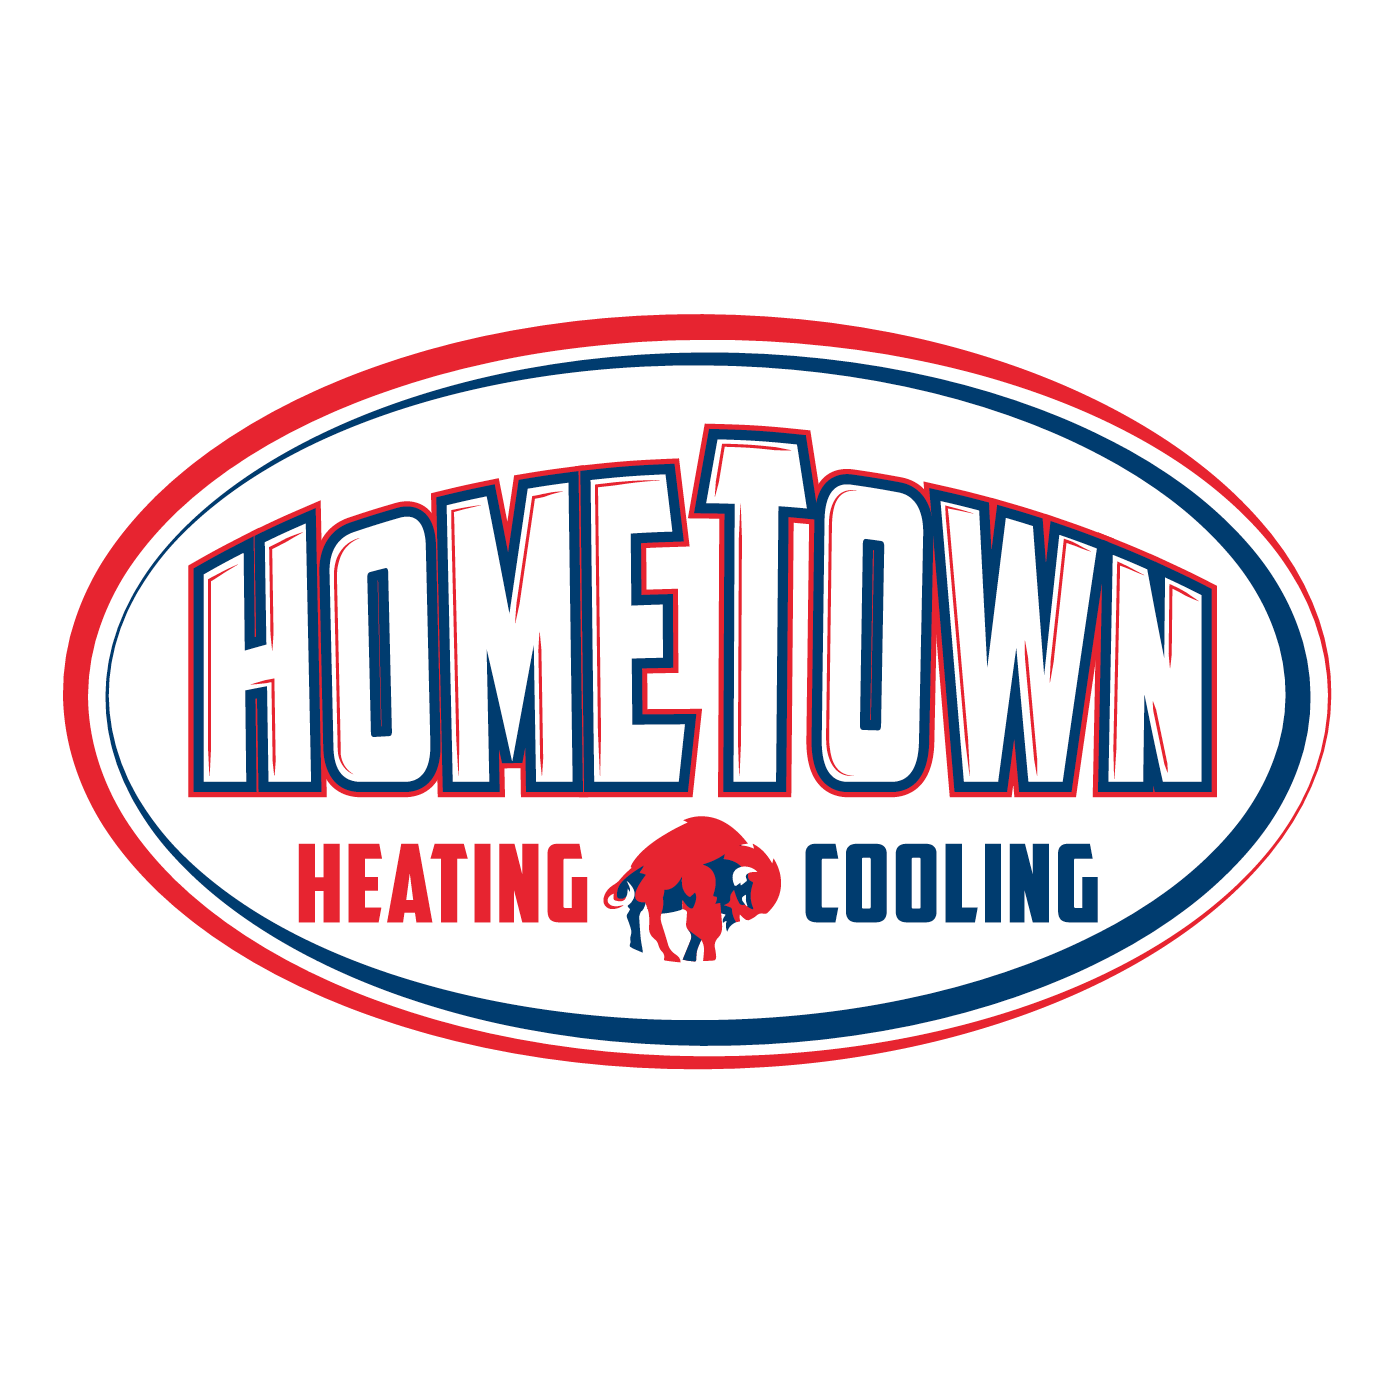 Hometown Heating & Cooling LLC primary image